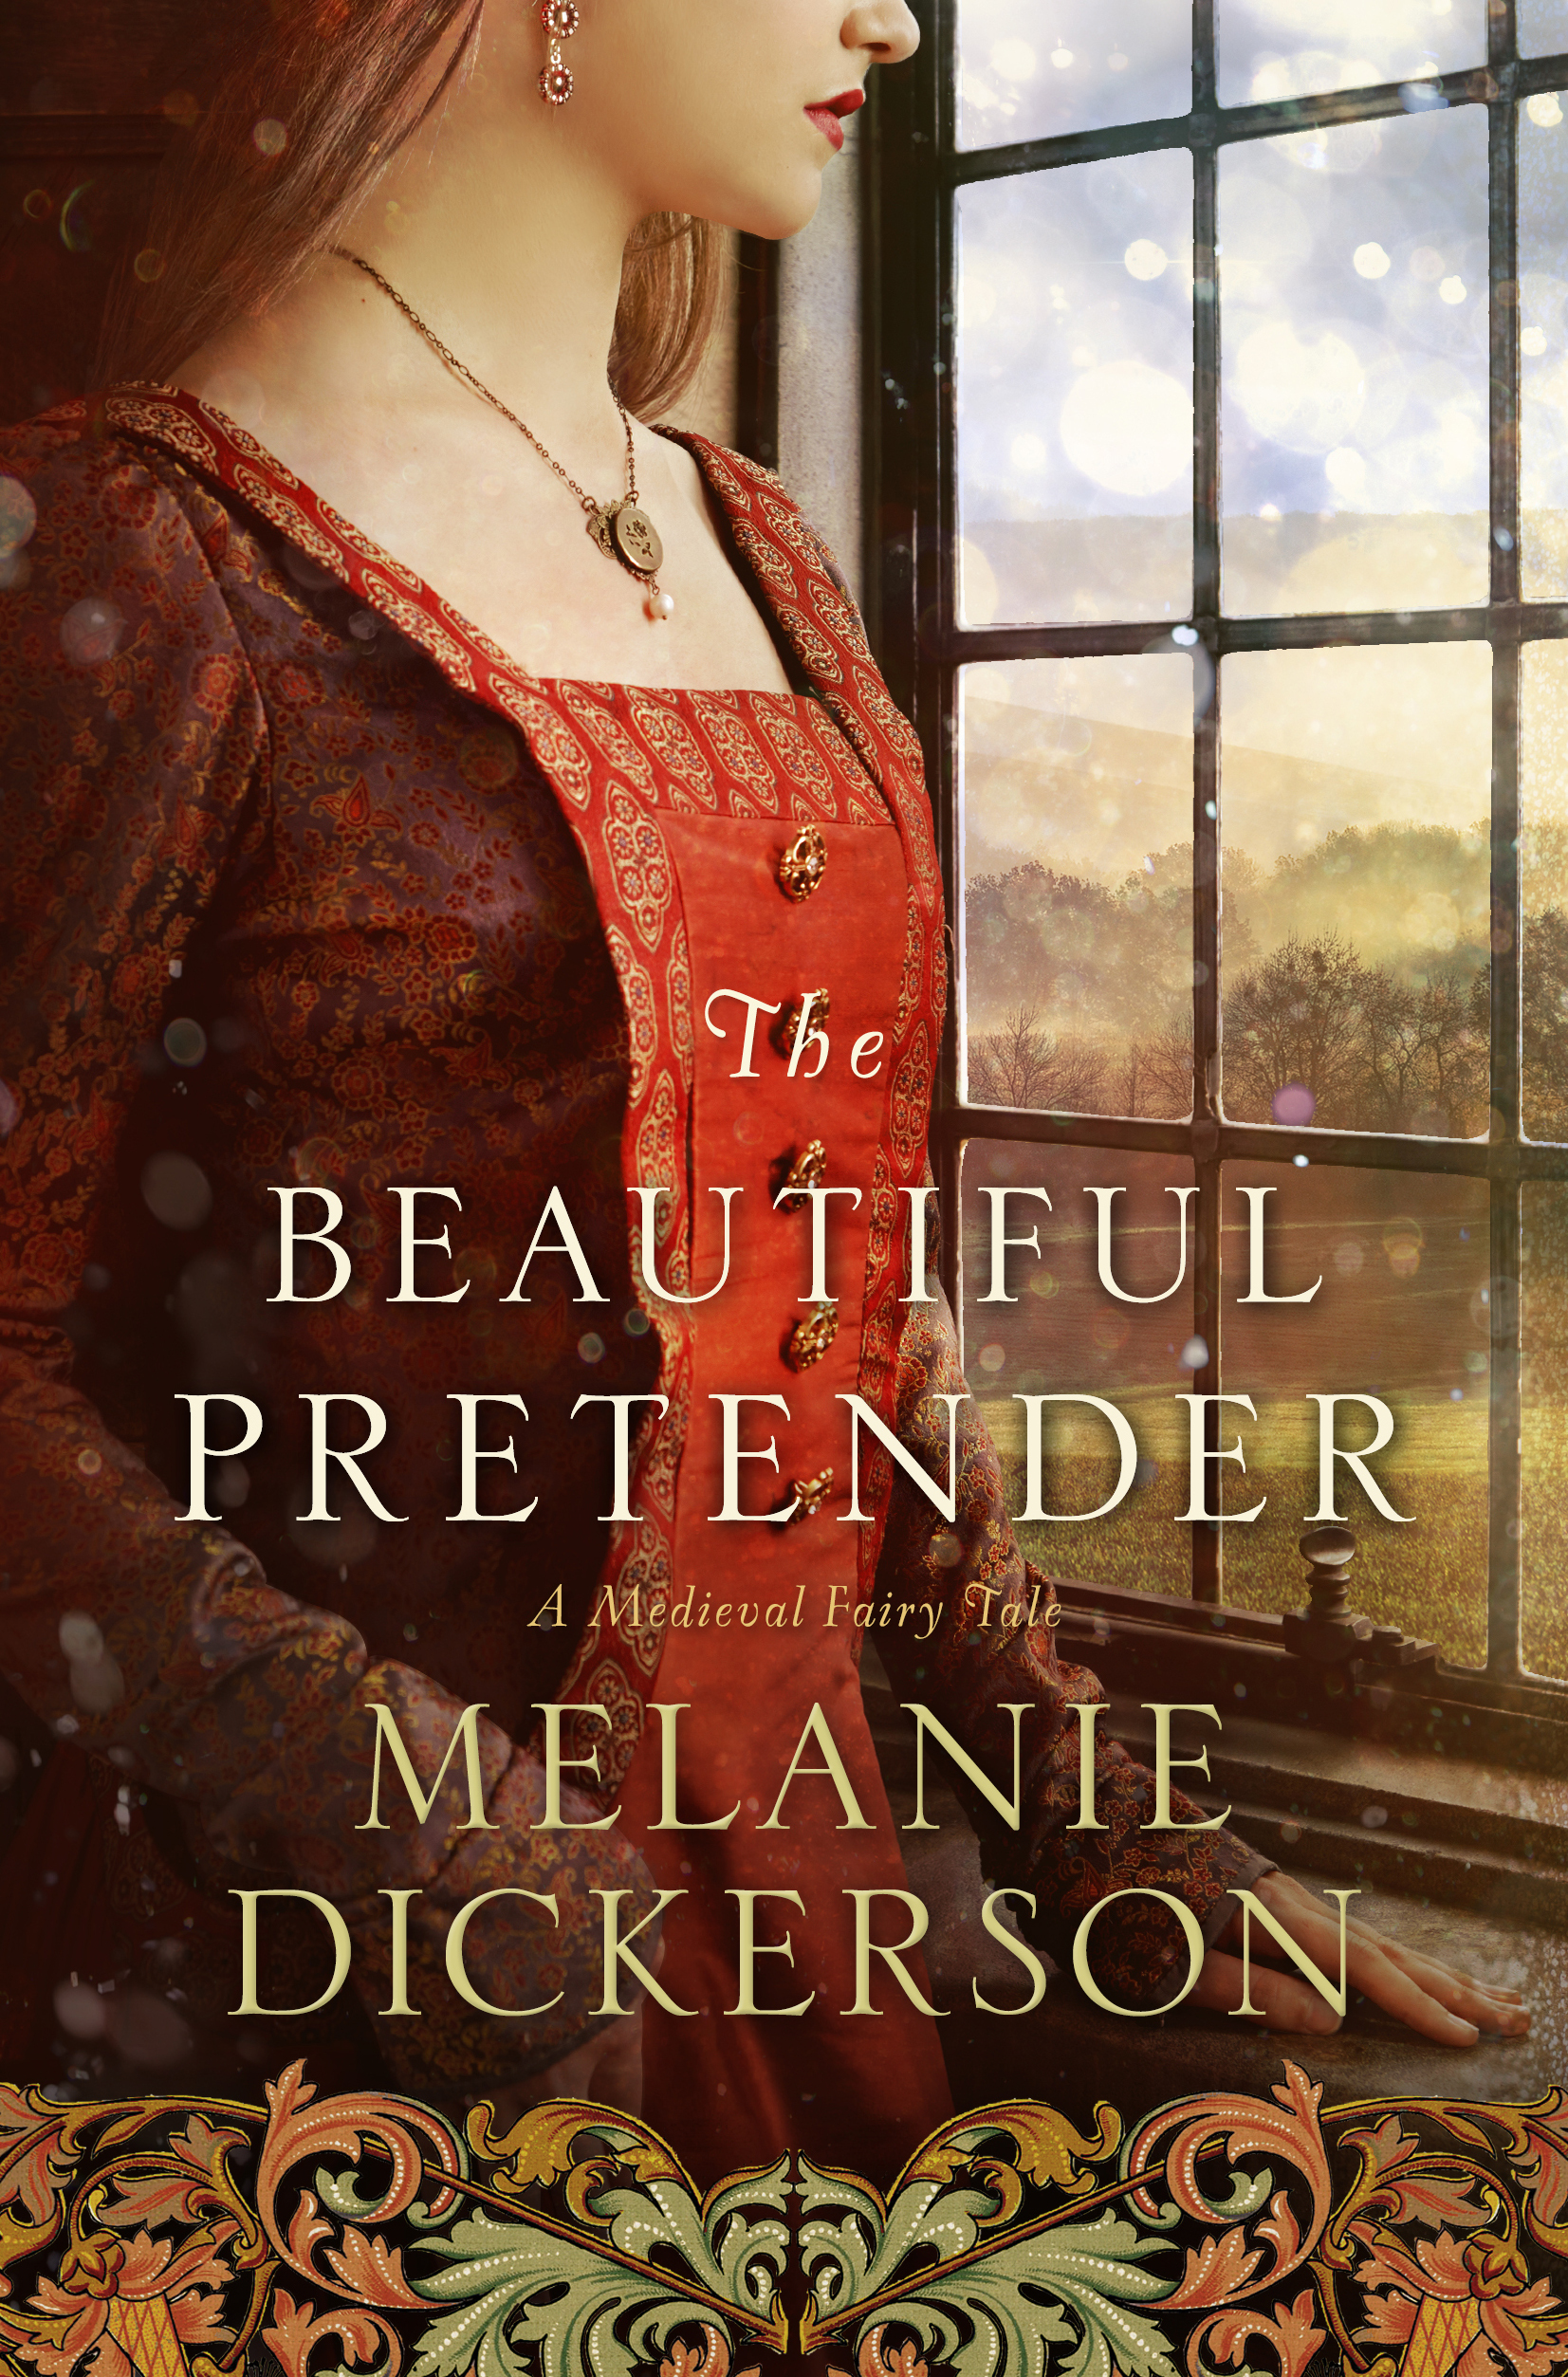 Image result for the beautiful pretender melanie dickerson